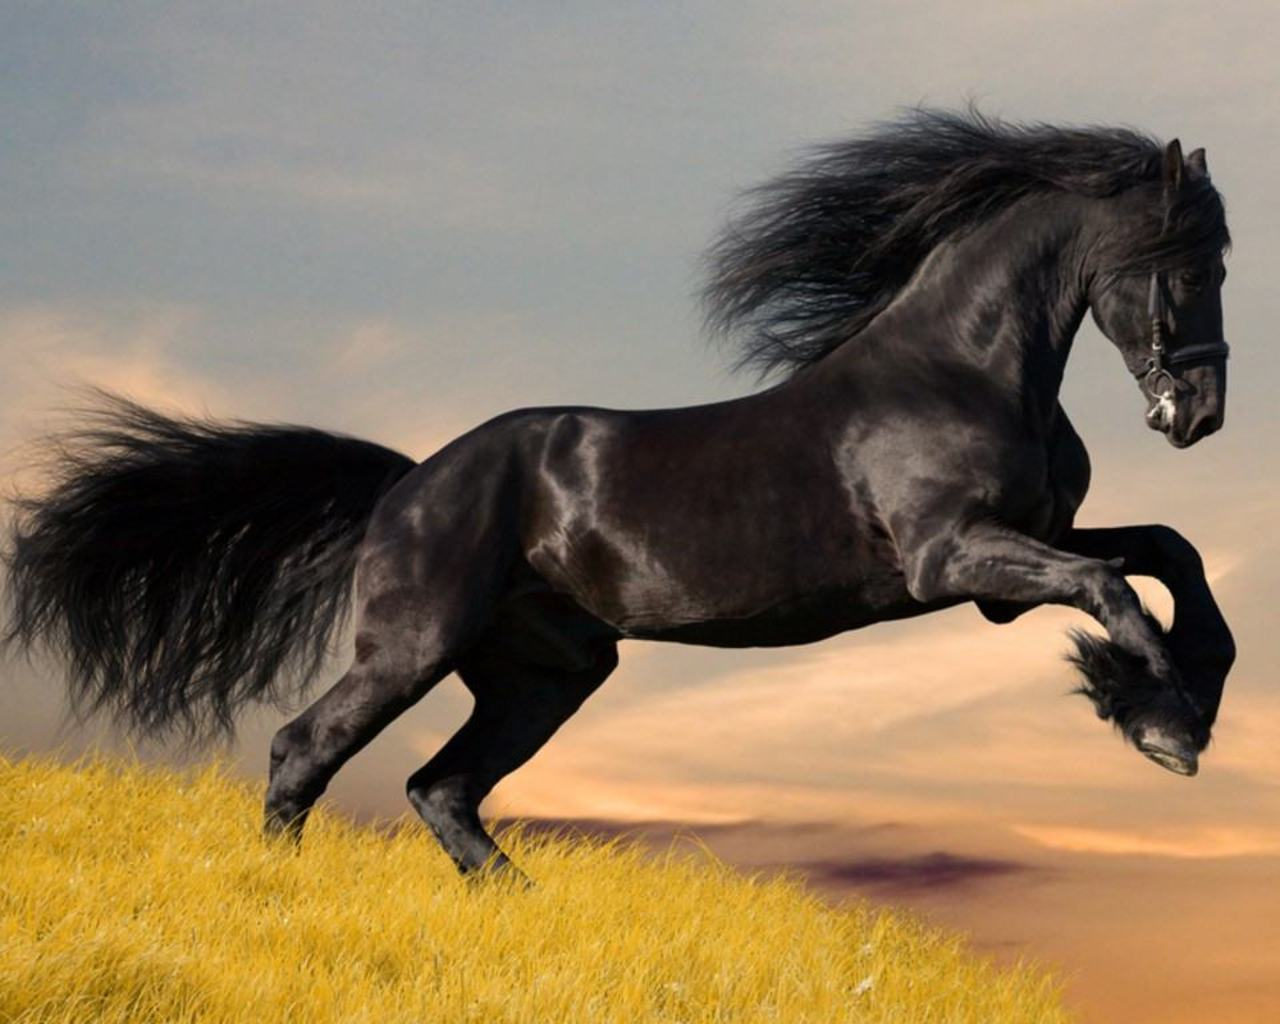 Download Wallpaper Horse Creepy - tumblr_static_9qxoiubodasc8cs80c8gw4c4k  HD_64682.jpg